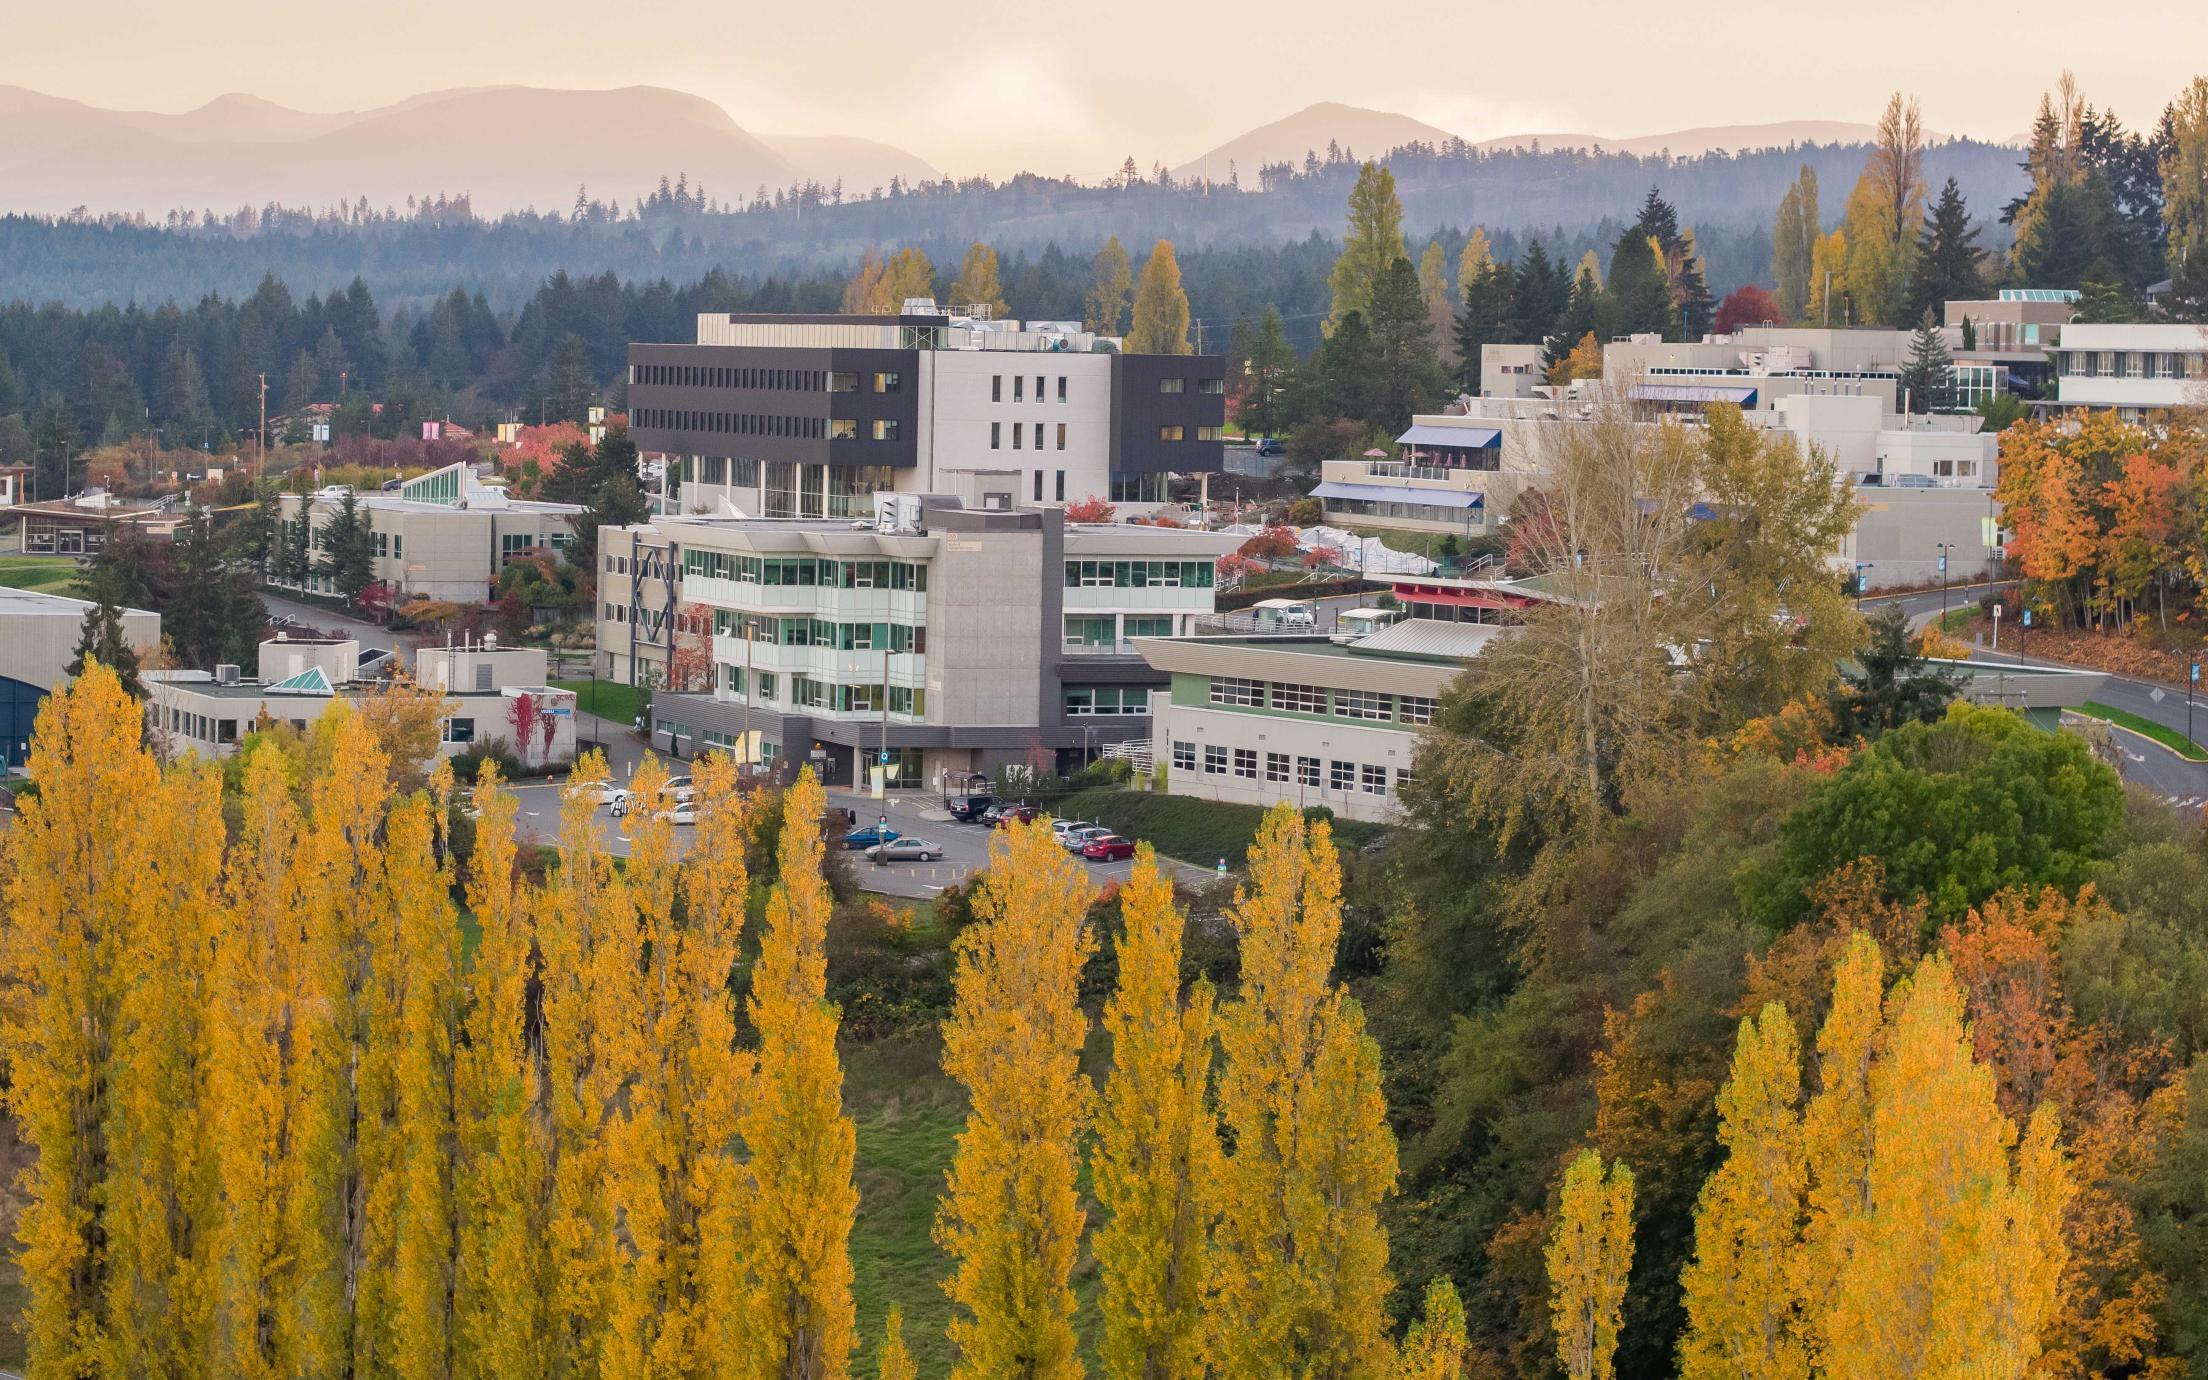 Aerial view of VIU campus